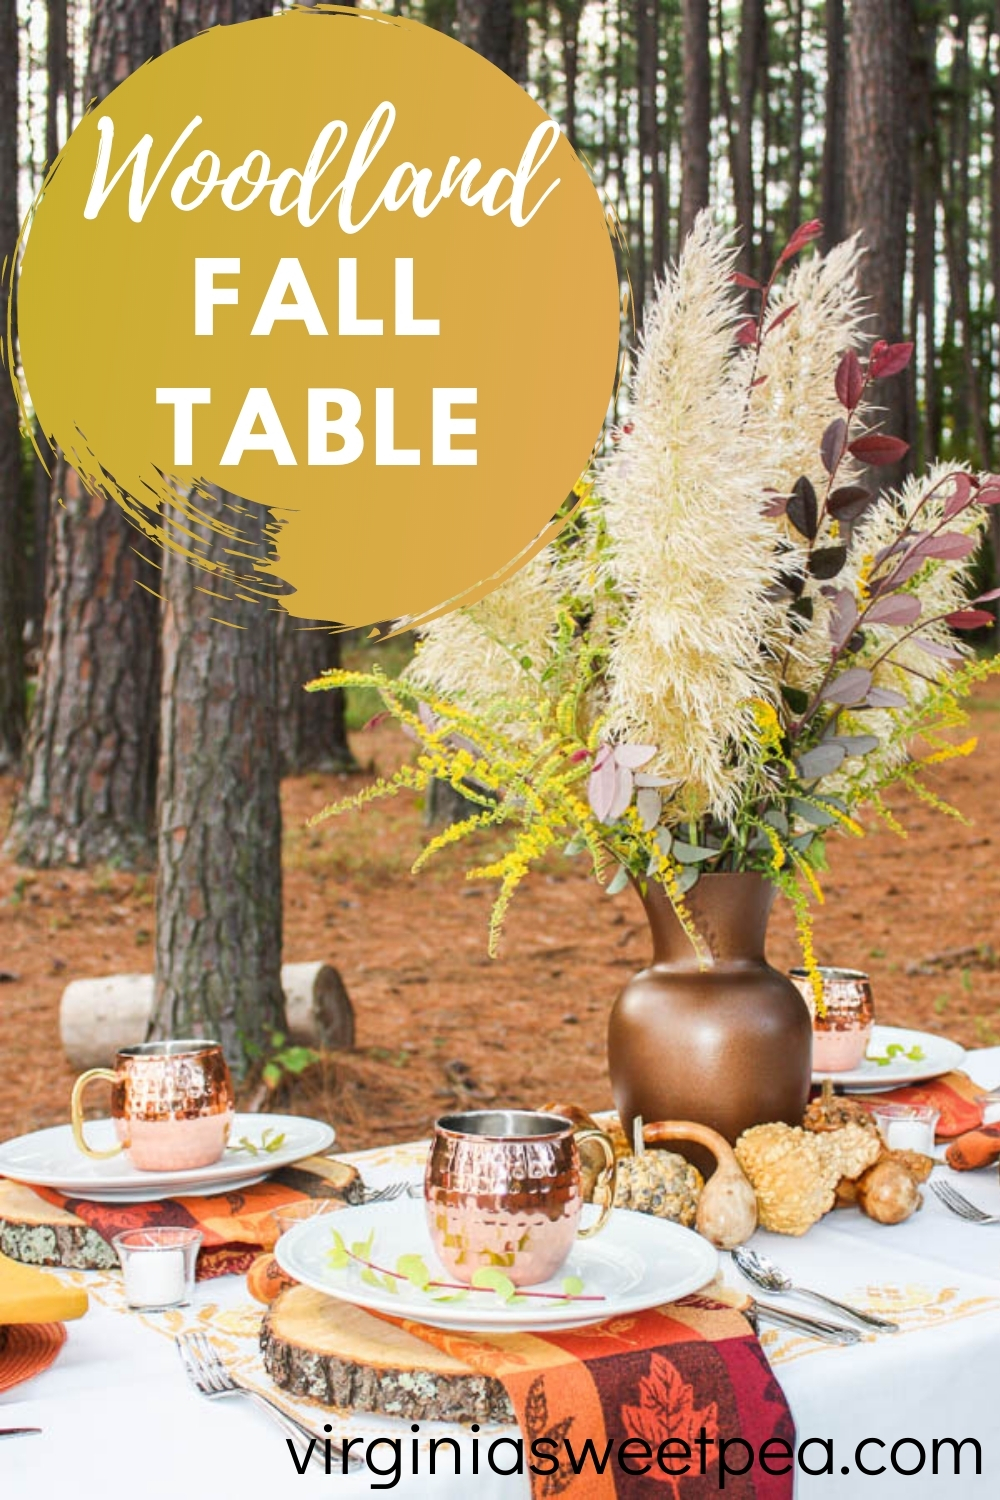 Woodland Fall Table - Get ideas to decorate a fall table with a woodland theme.  #falltable #falltableideas #falltablescape via @spaula